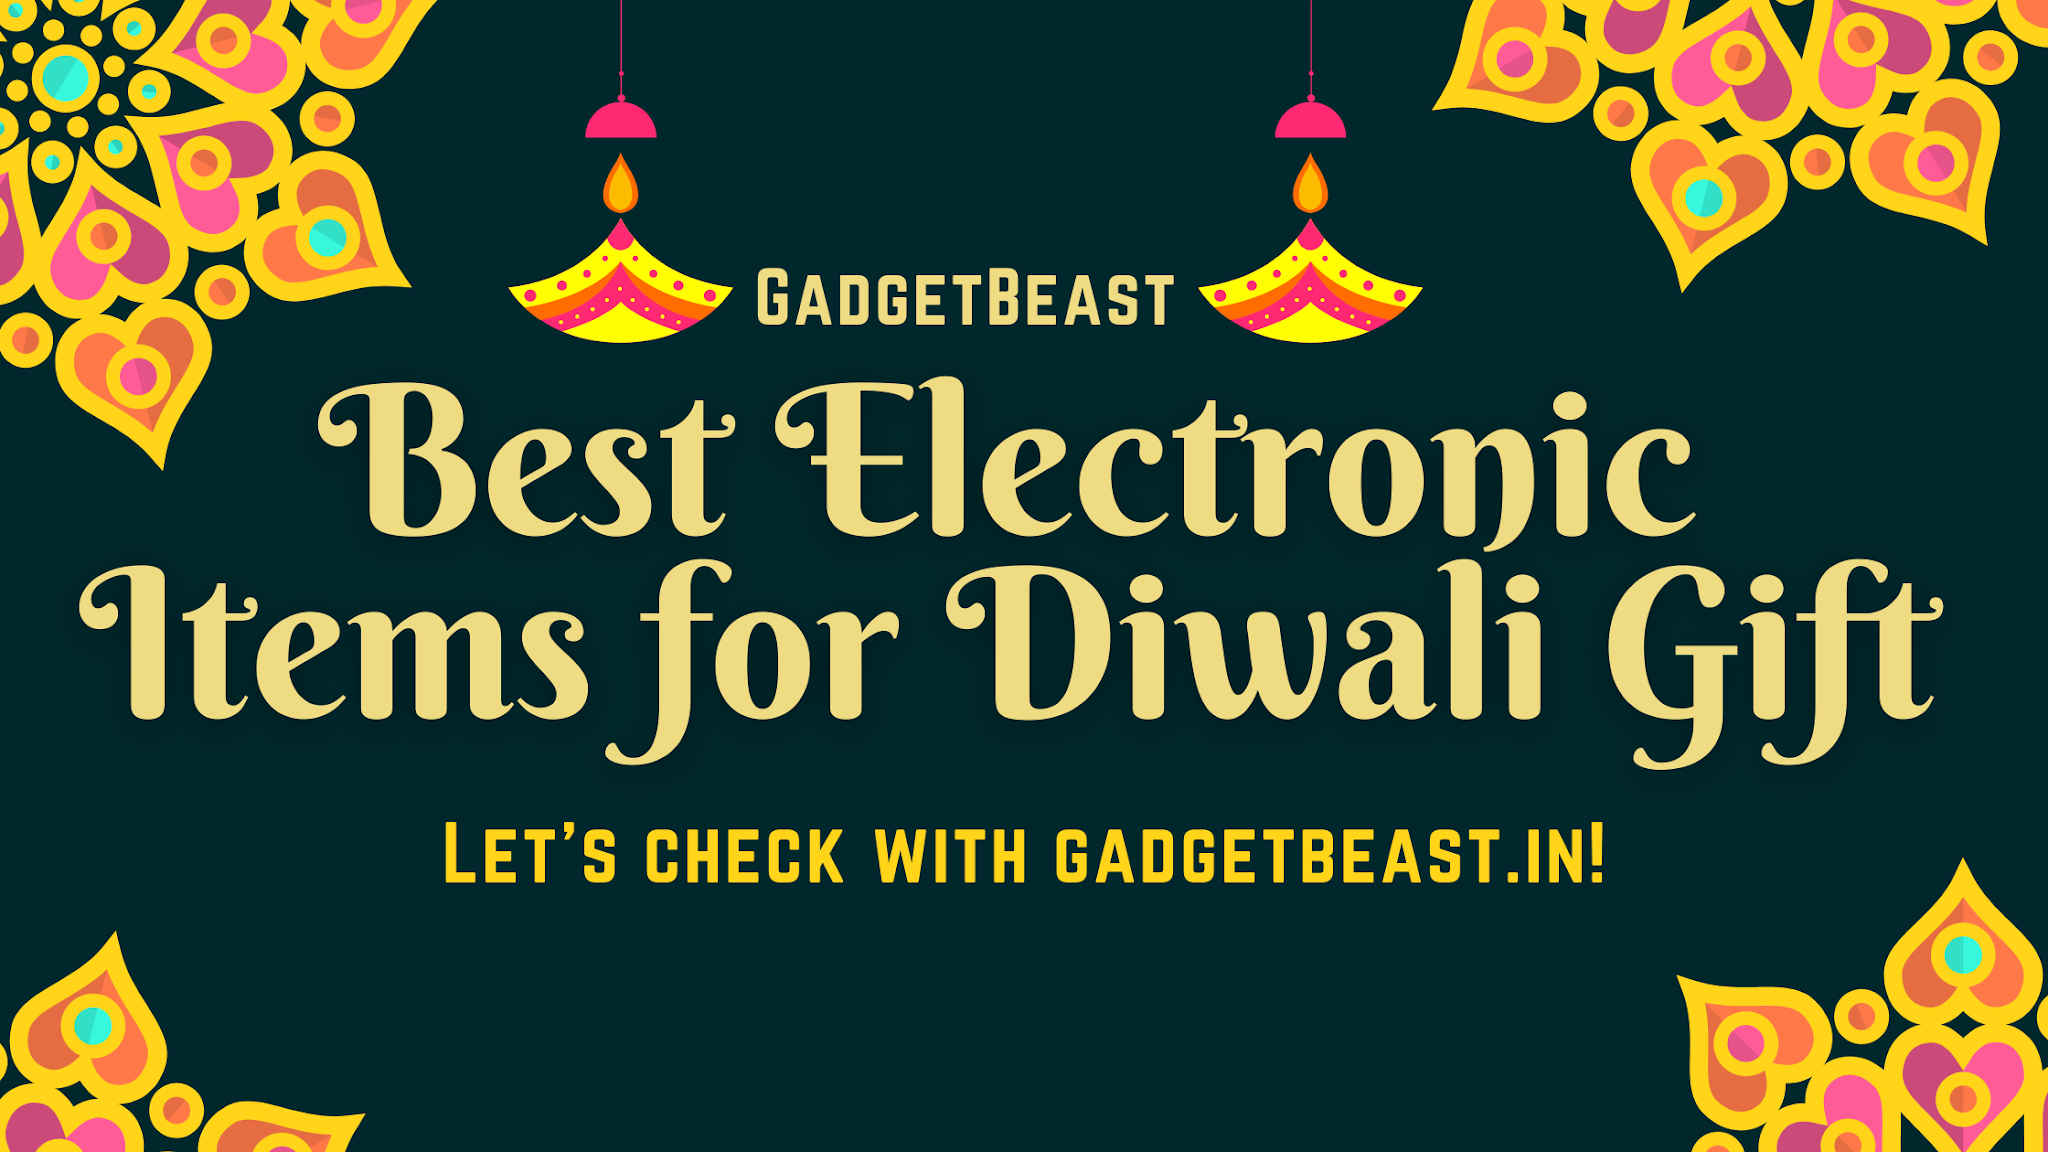 Best Electronic Items for Diwali Gift